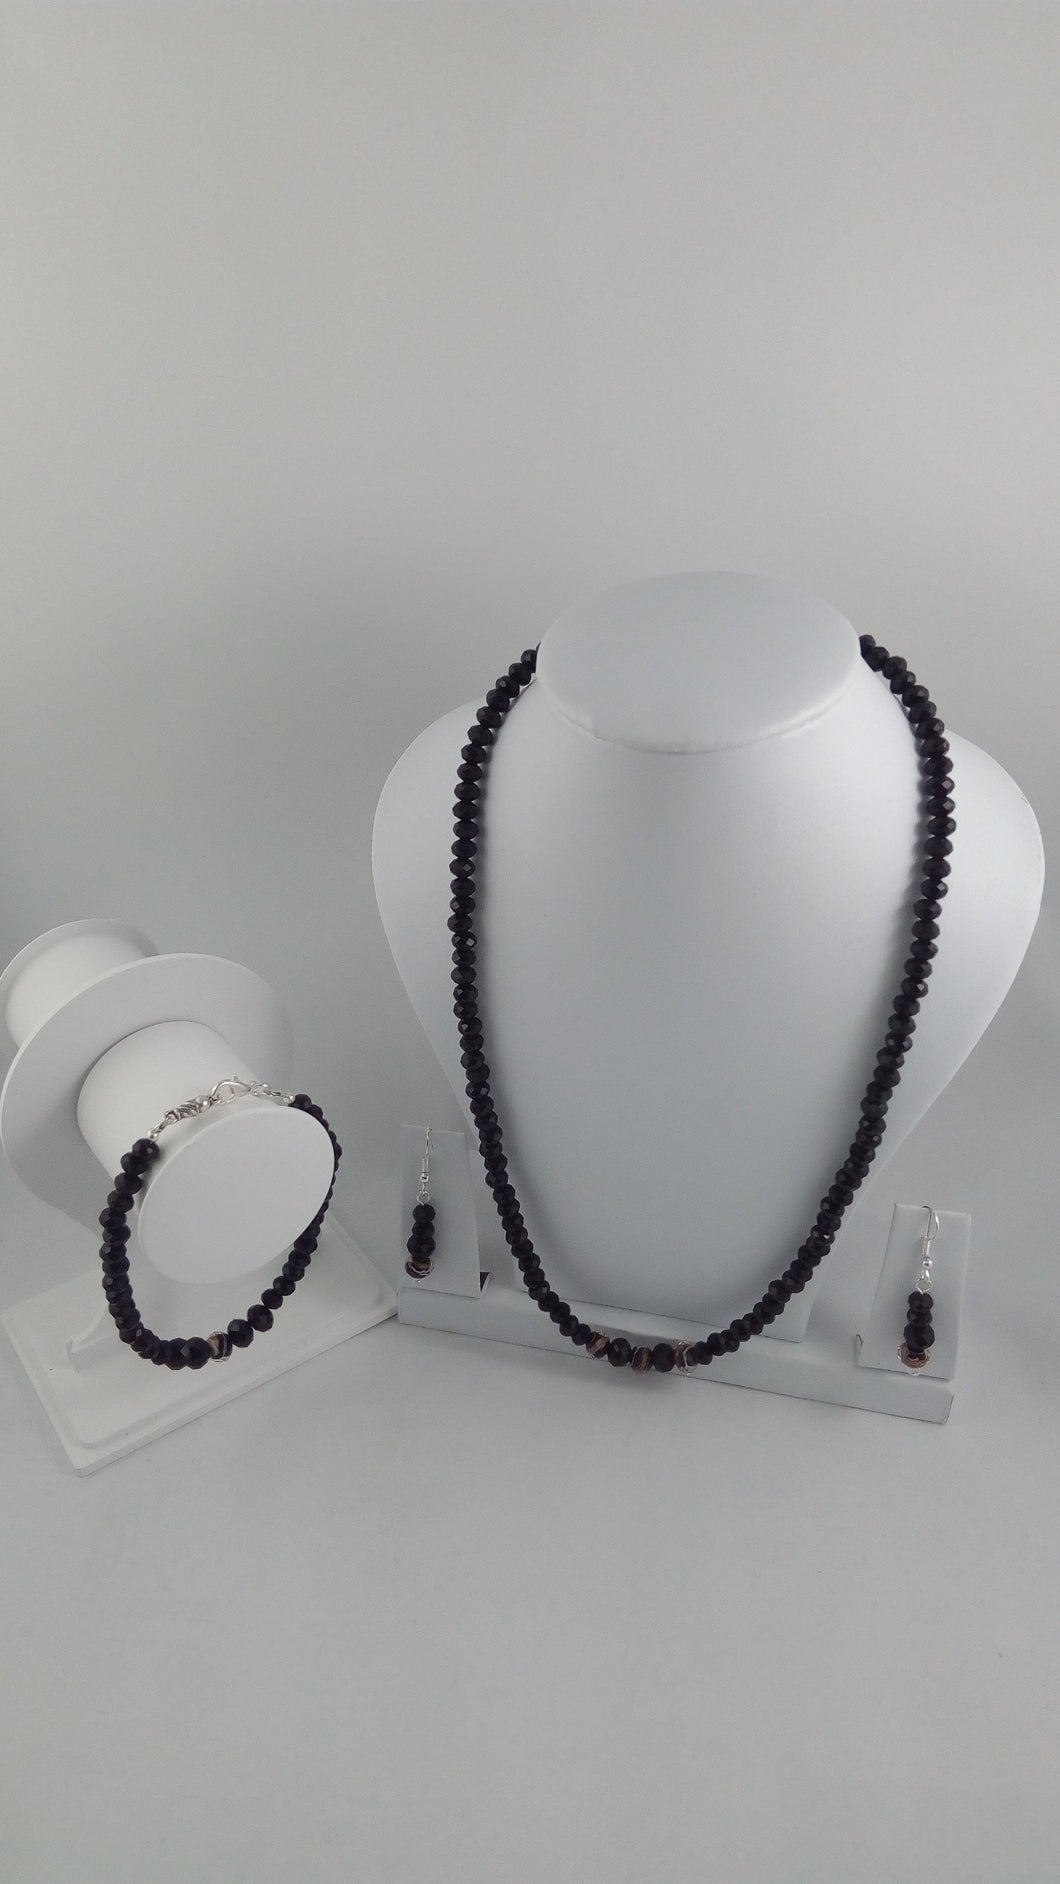 black crystal jewelry handmade lampwork glass beads necklace bracelet and earrings set free shipping worldwide